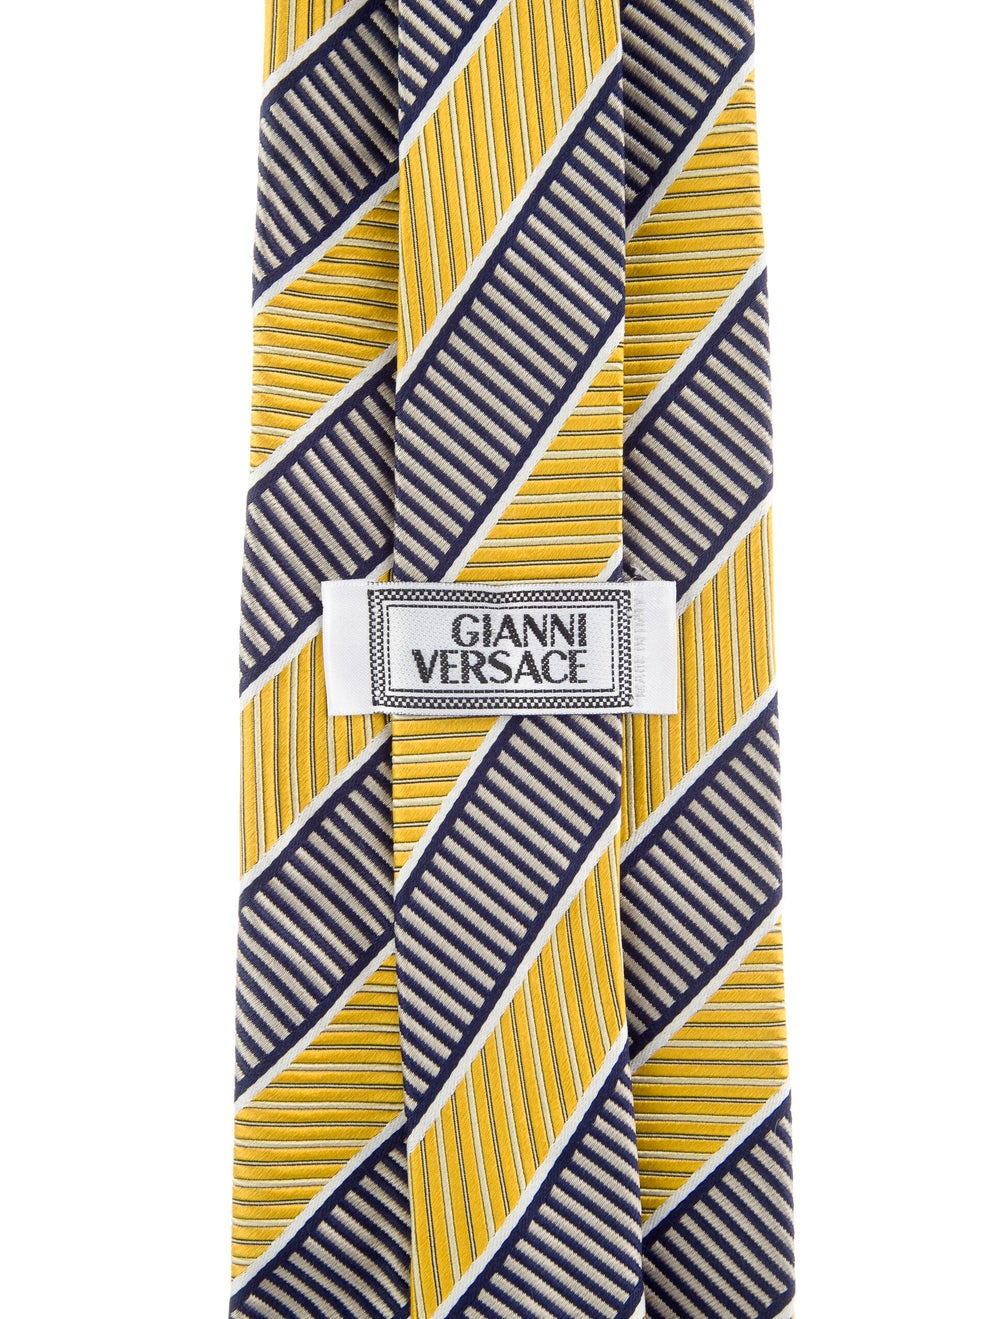 Gianni Versace gold - image 2